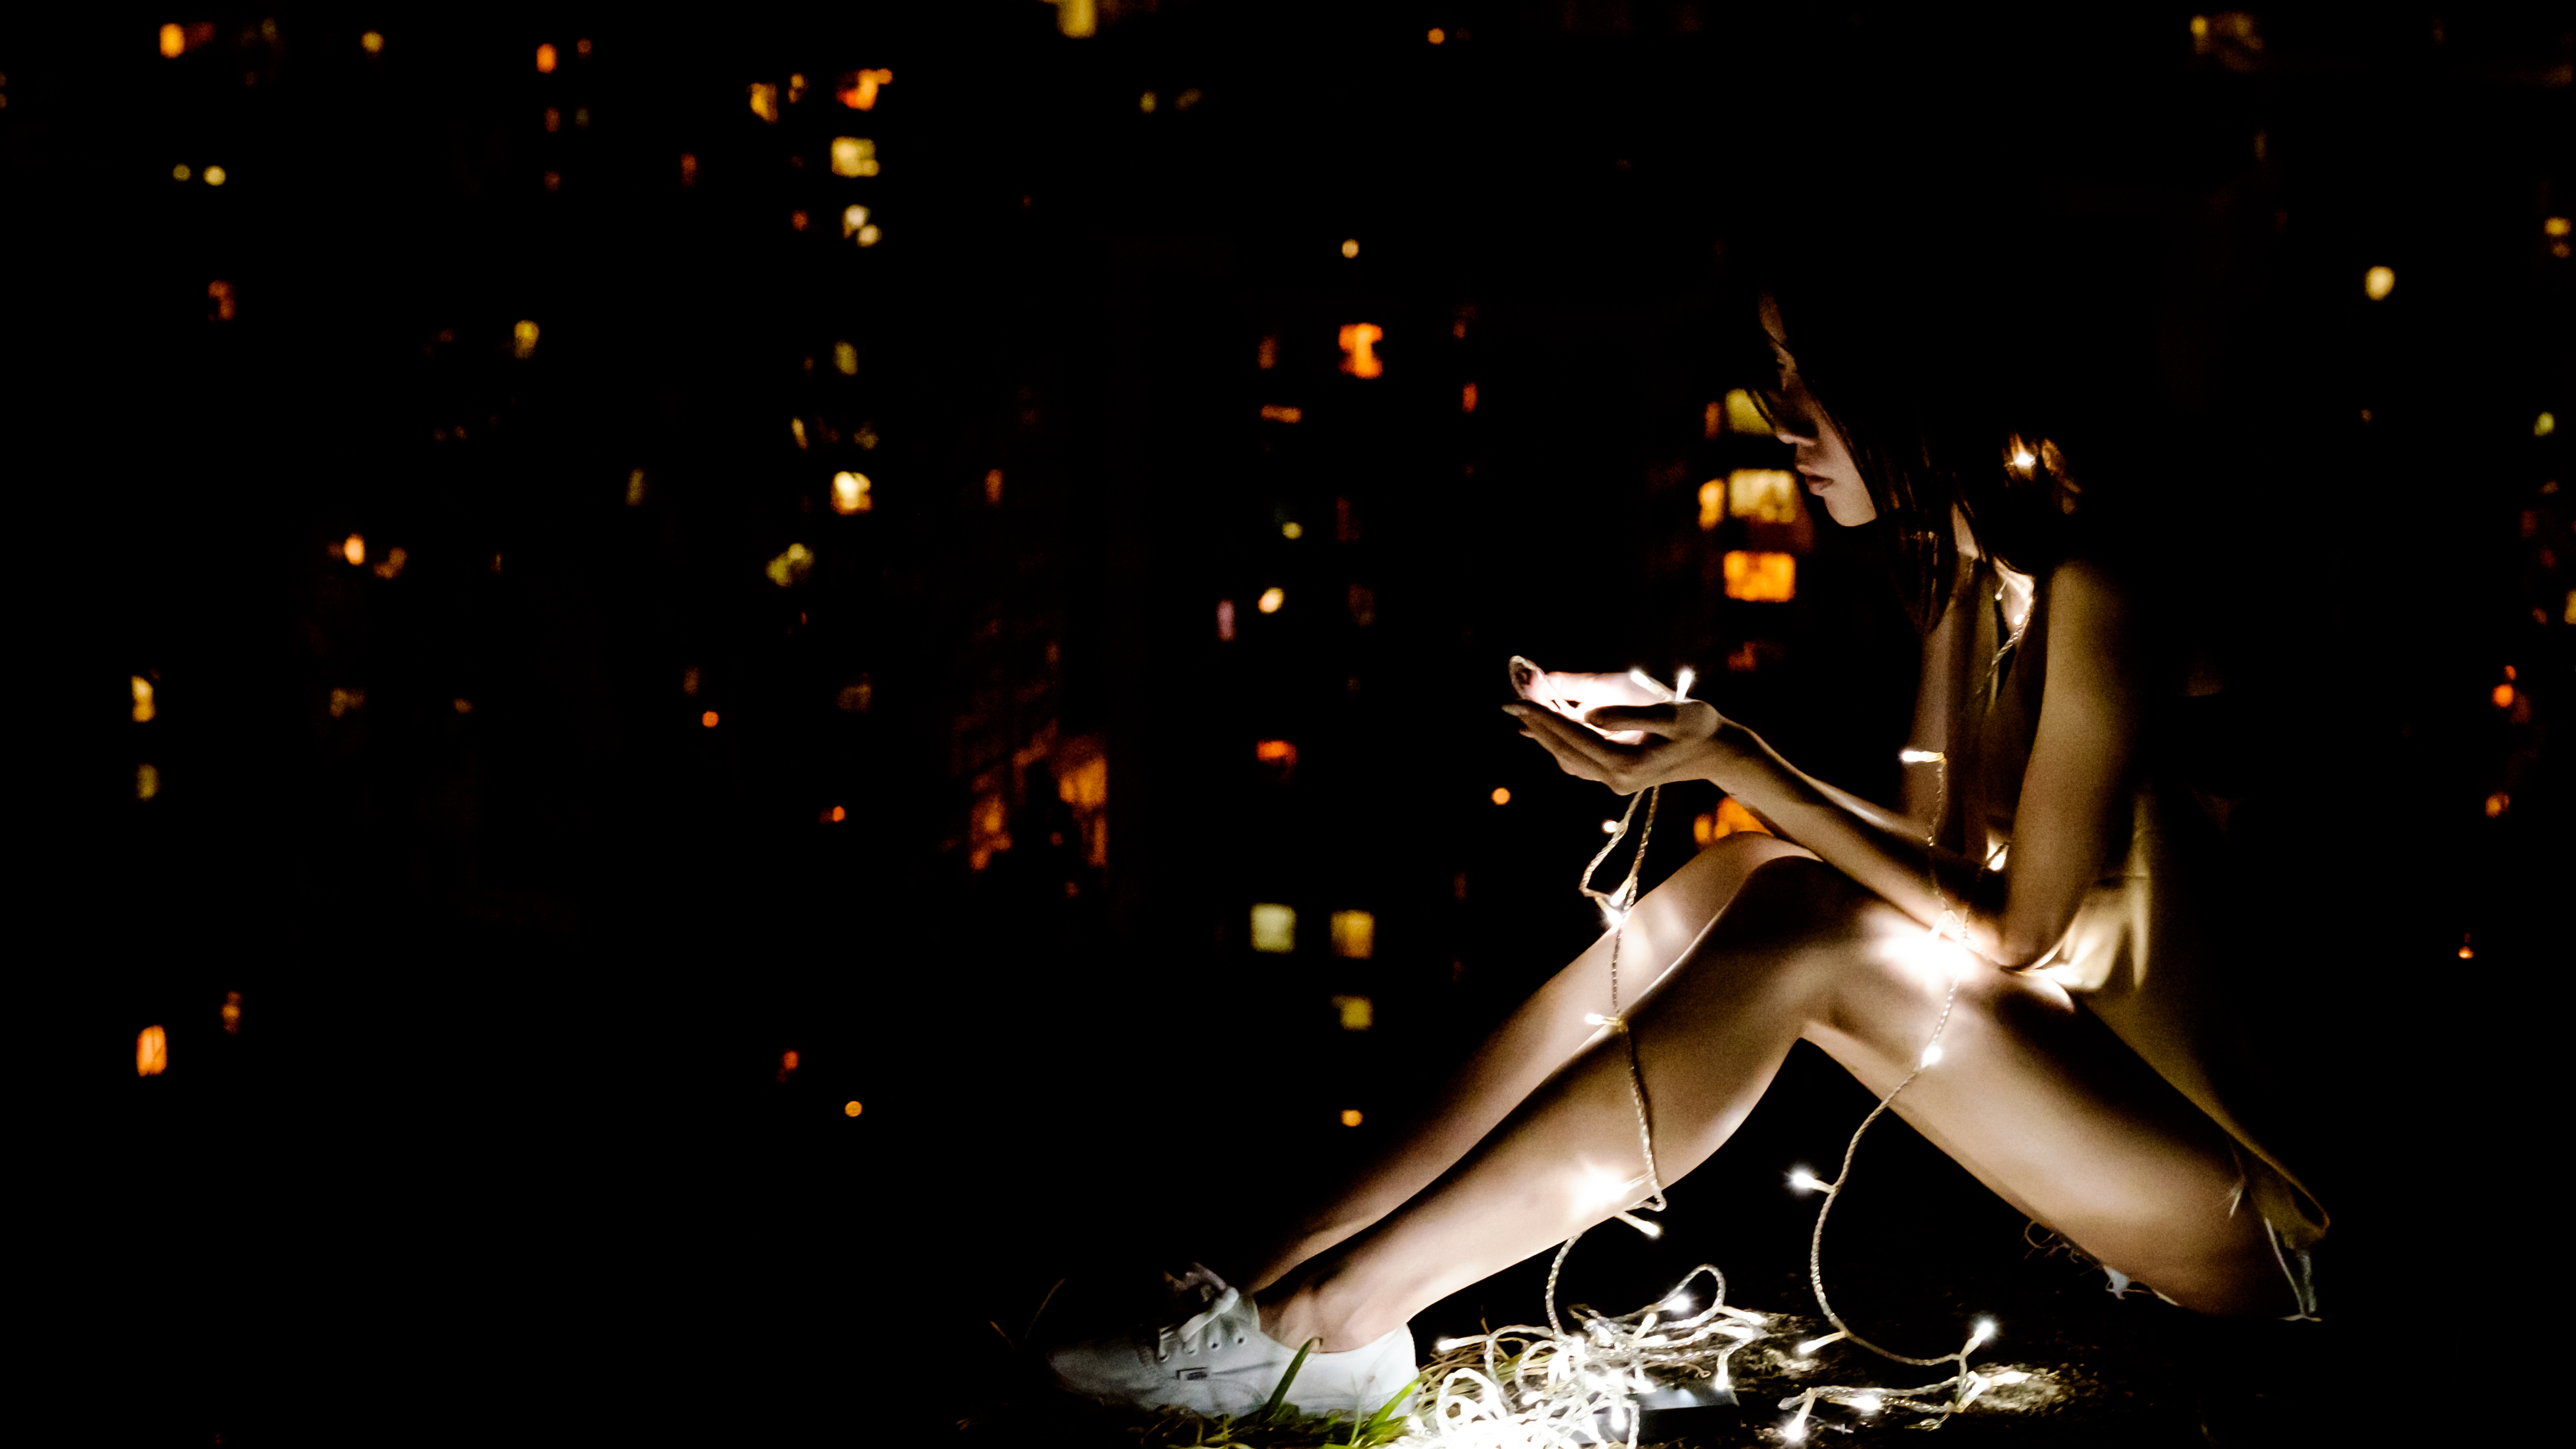 Fall Cell Phone Wallpaper Girl With White Christmas Lights Photo By Tommy Tong